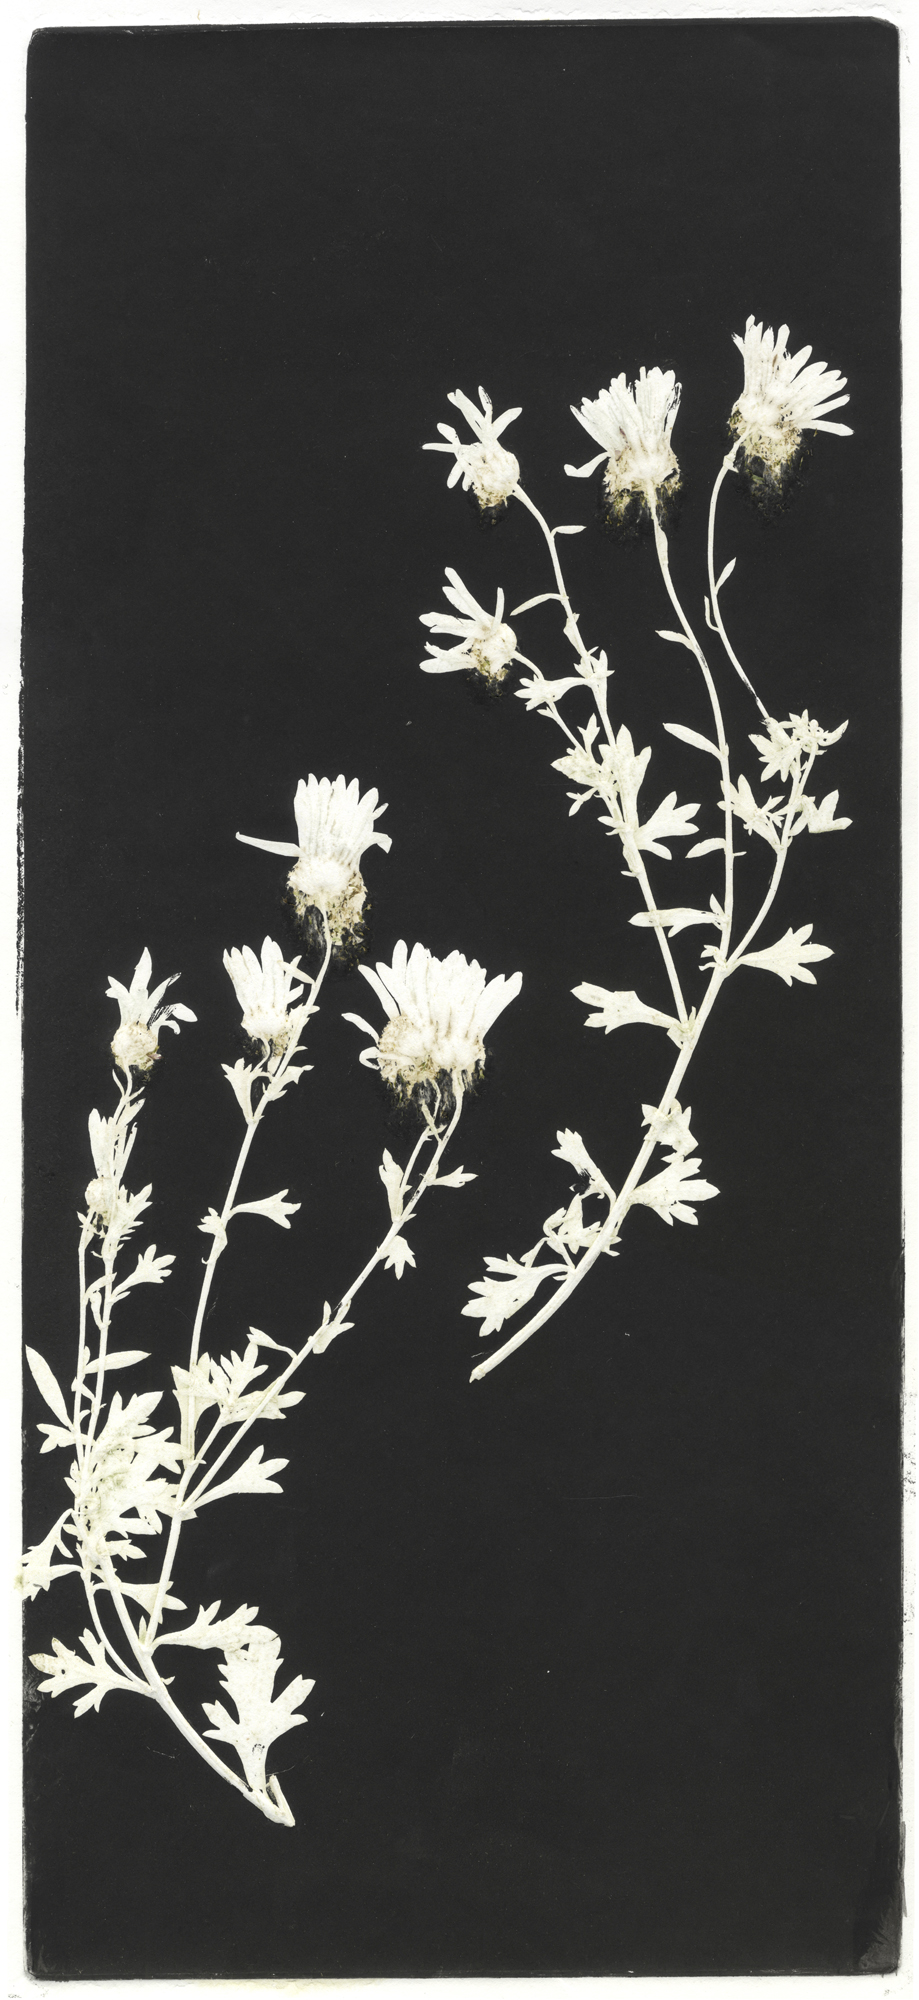 Artist Sandra Campbell's mono print of a daisy, part of her work entitled, My Garden.